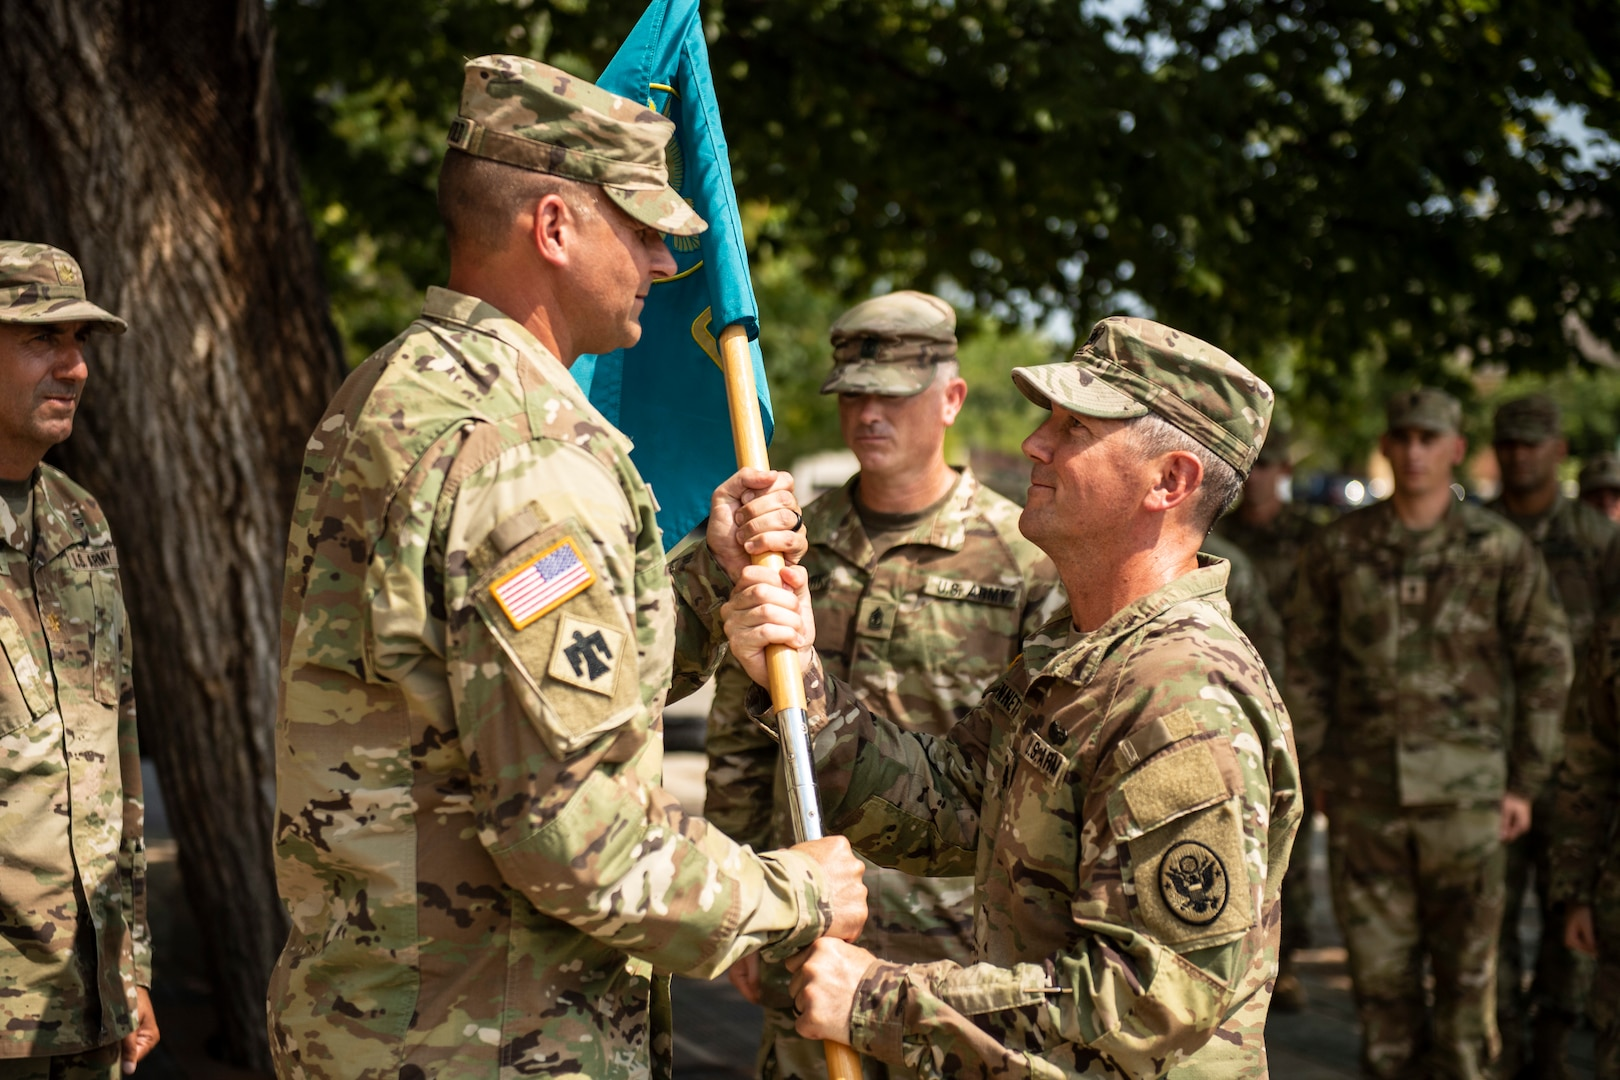 Oklahoma National Guard Lt. Col. Carl Bennett,  outgoing commander with the 63rd CST, passes the unit guidon to Col. Lars Ostervold, commander of the 90th Troop Command, during a change of command ceremony at the Oklahoma City Memorial and Museum, Sept. 1.  The passing of the guidon signifies the formal transfer of authority and responsibility of the unit to the new commander.